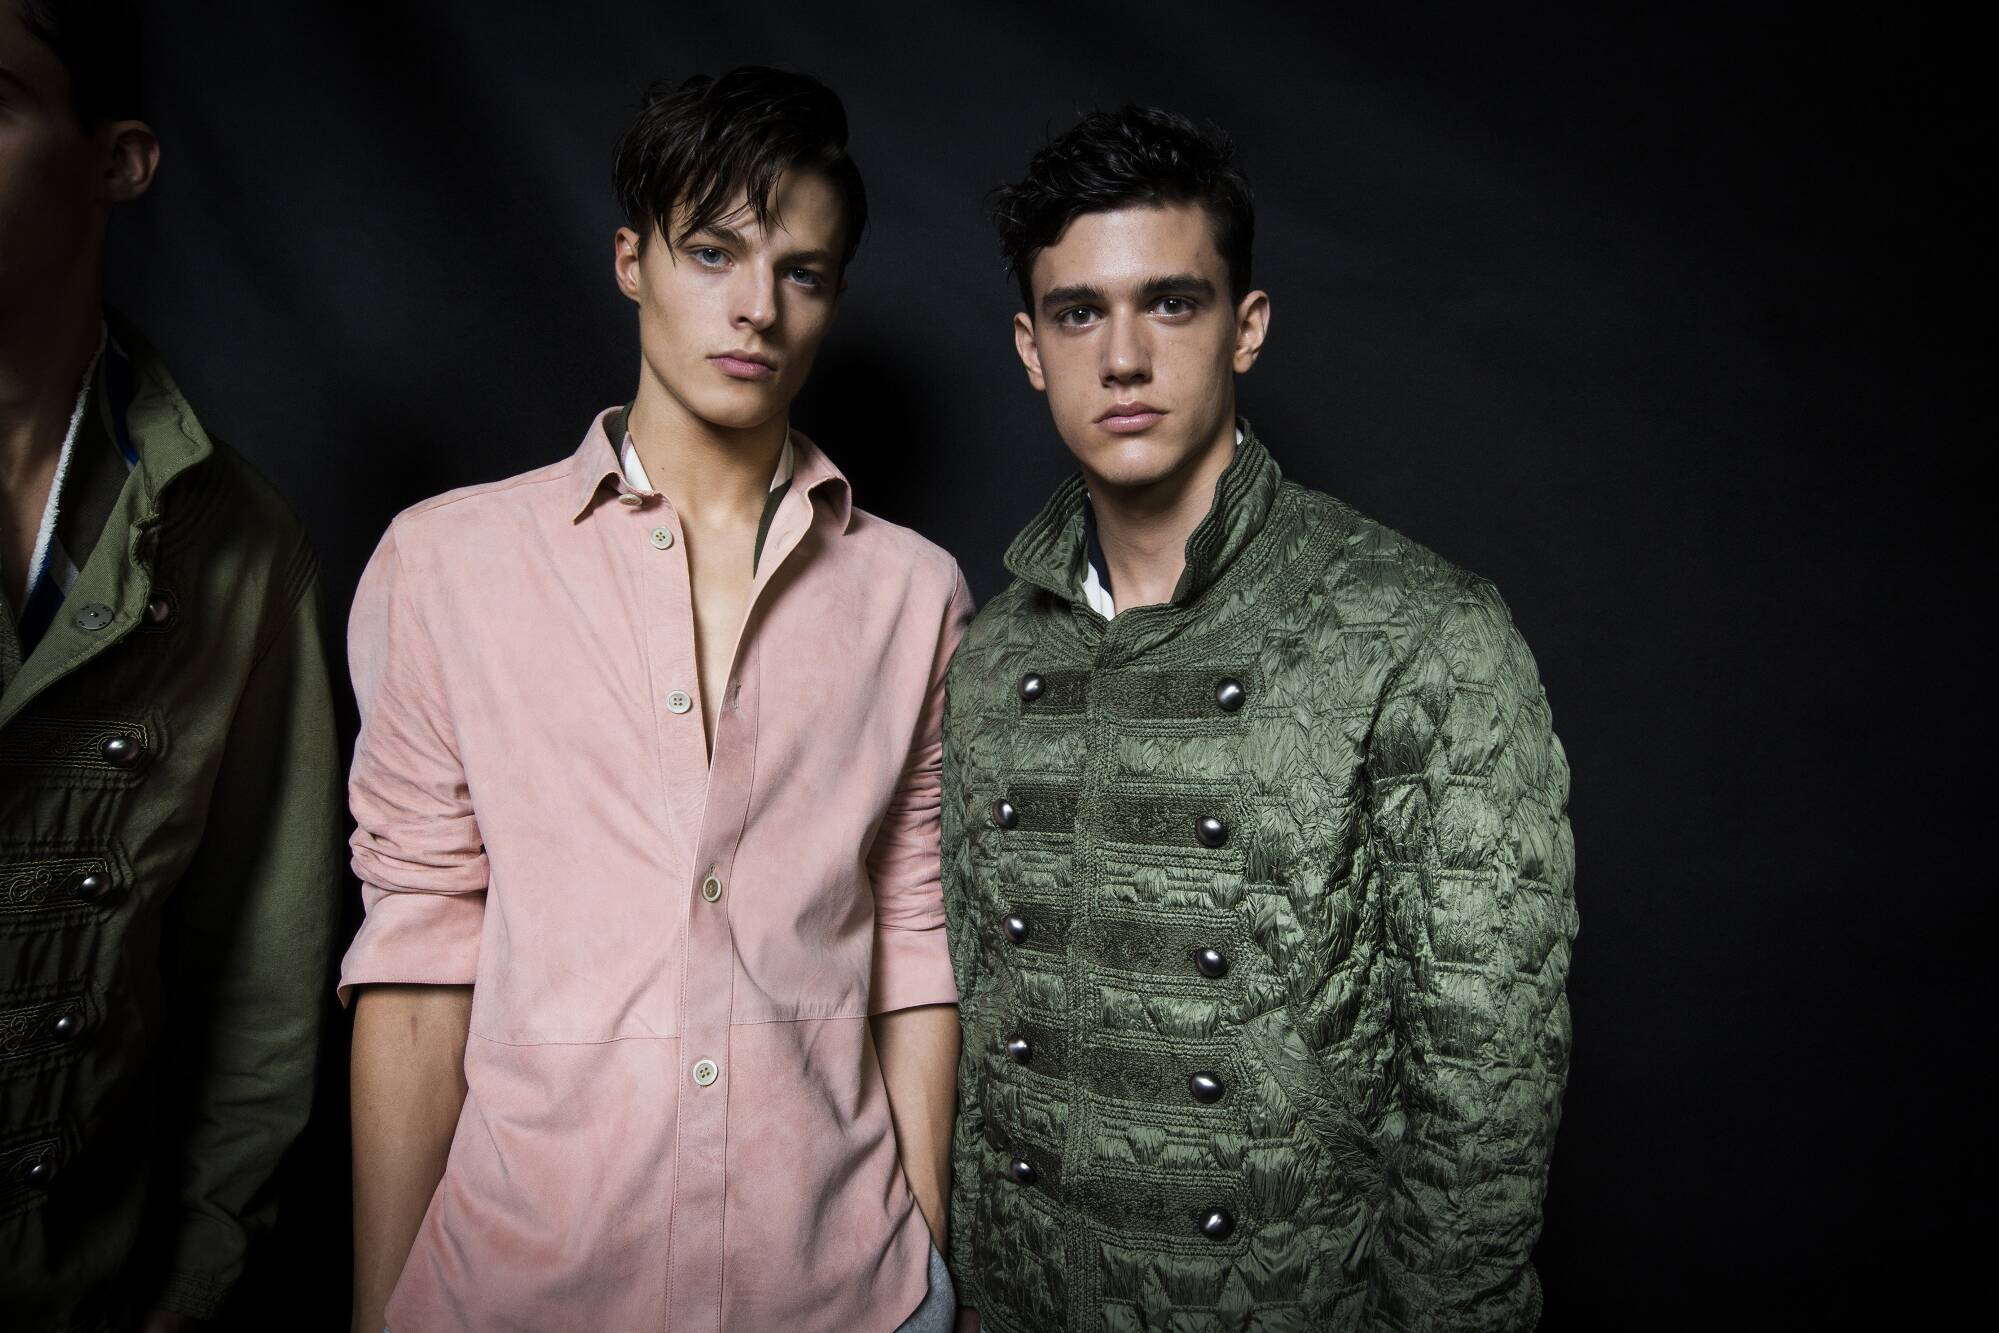 Ermanno Scervino Backstage Fashion Models Milan